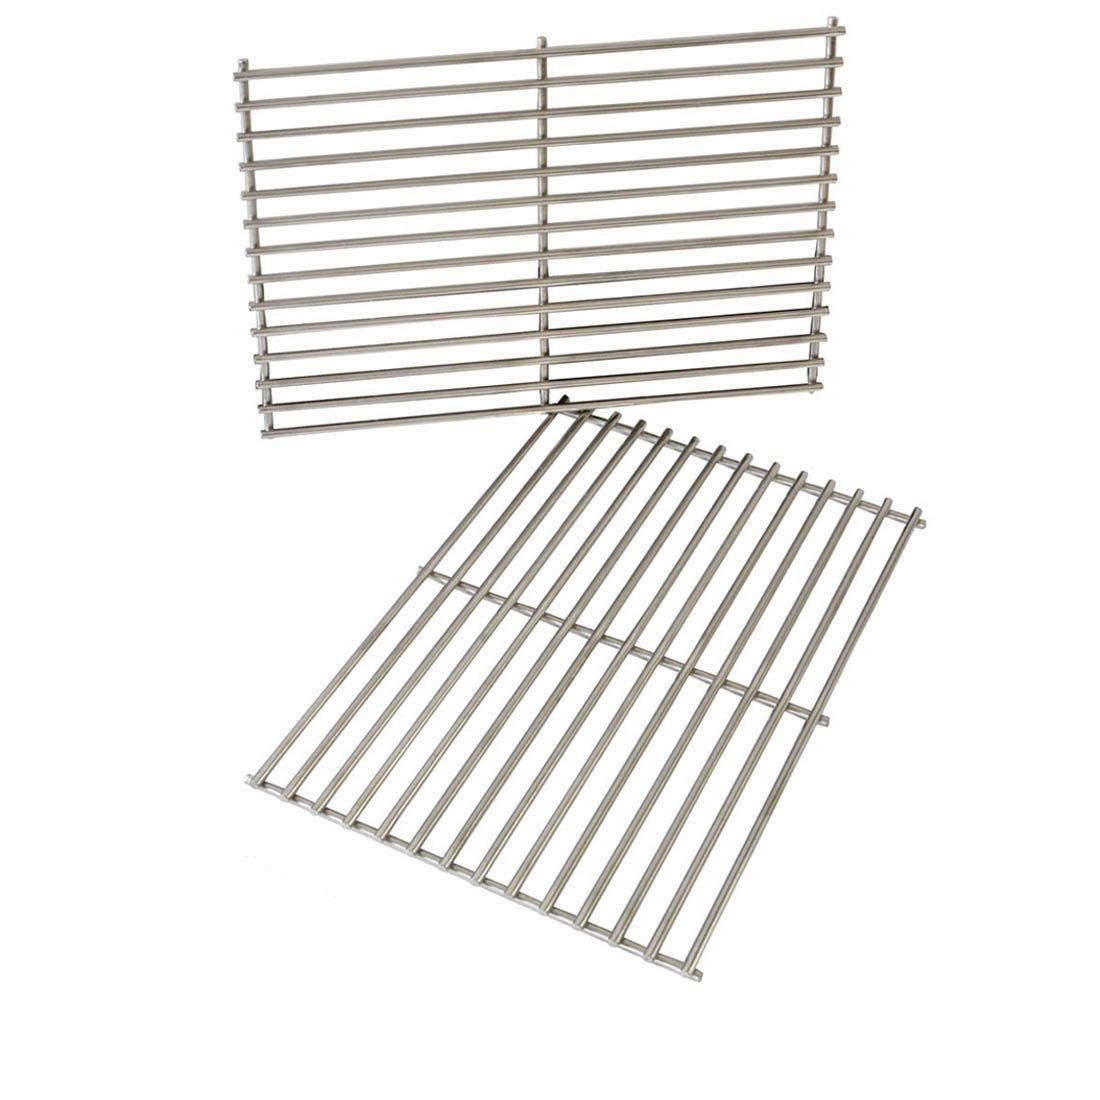 Onlyfire Replacement BBQ Stainless Steel Cooking Grill ROD Grid Grates for Weber 7527 9930 Spirit and Lowes 8505-RS2